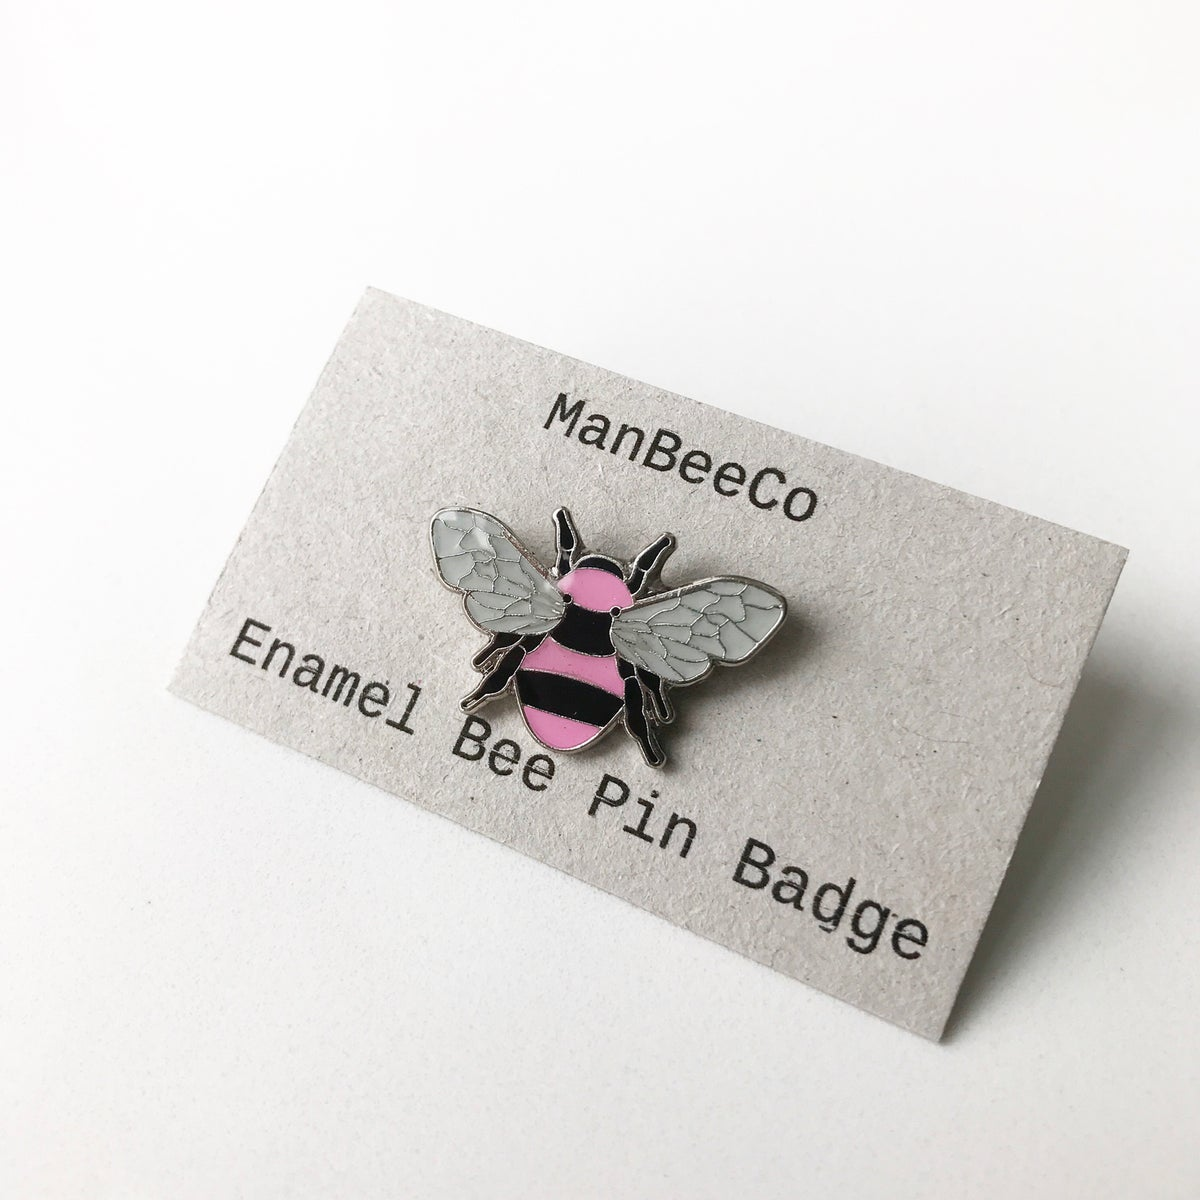 Image of Manchester Bee Enamel Pin Badge in Pink